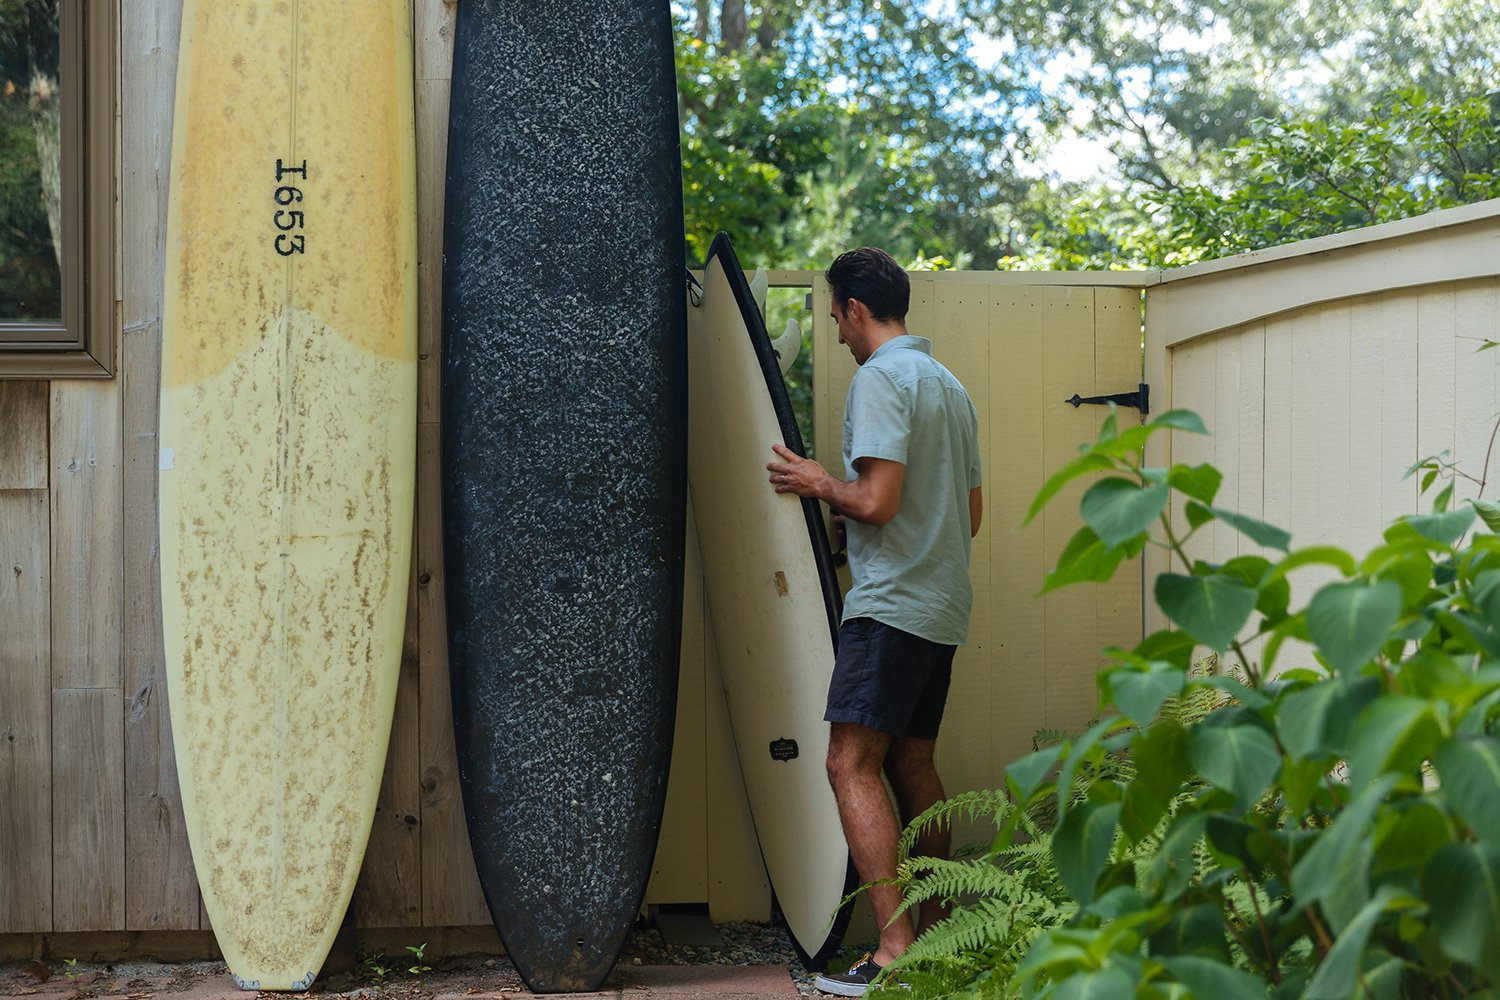 Photo 6 of 12 in Surf Shacks 032 - Matt Olerio + Joanna Zamora